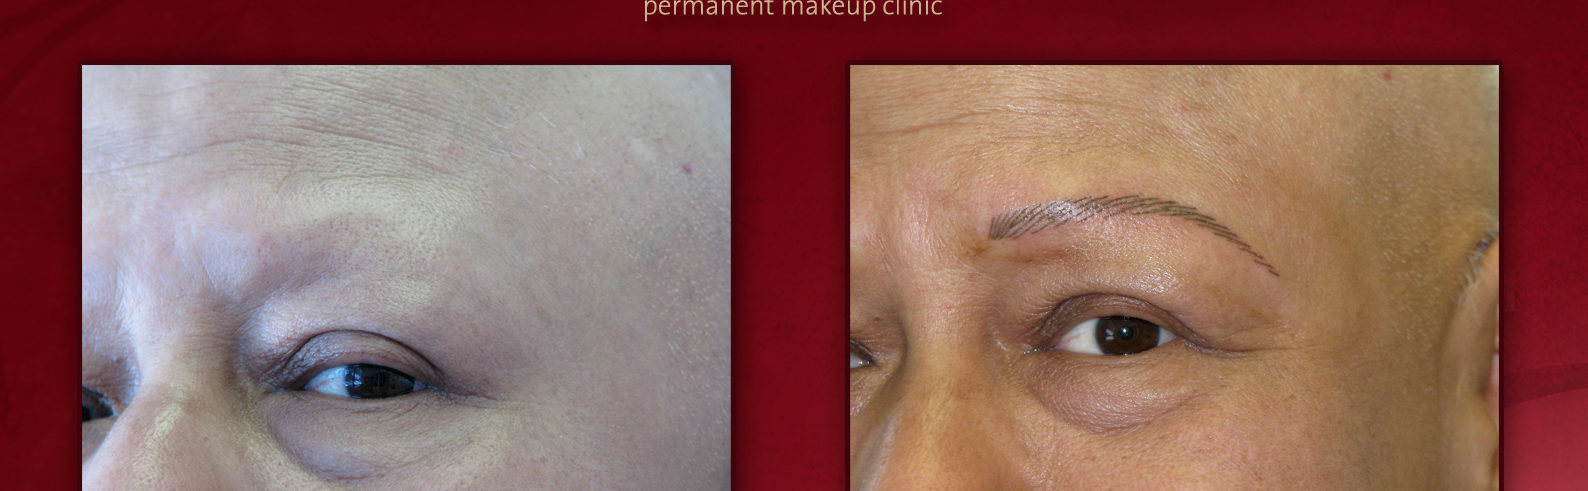 permanent eyebrows pictures